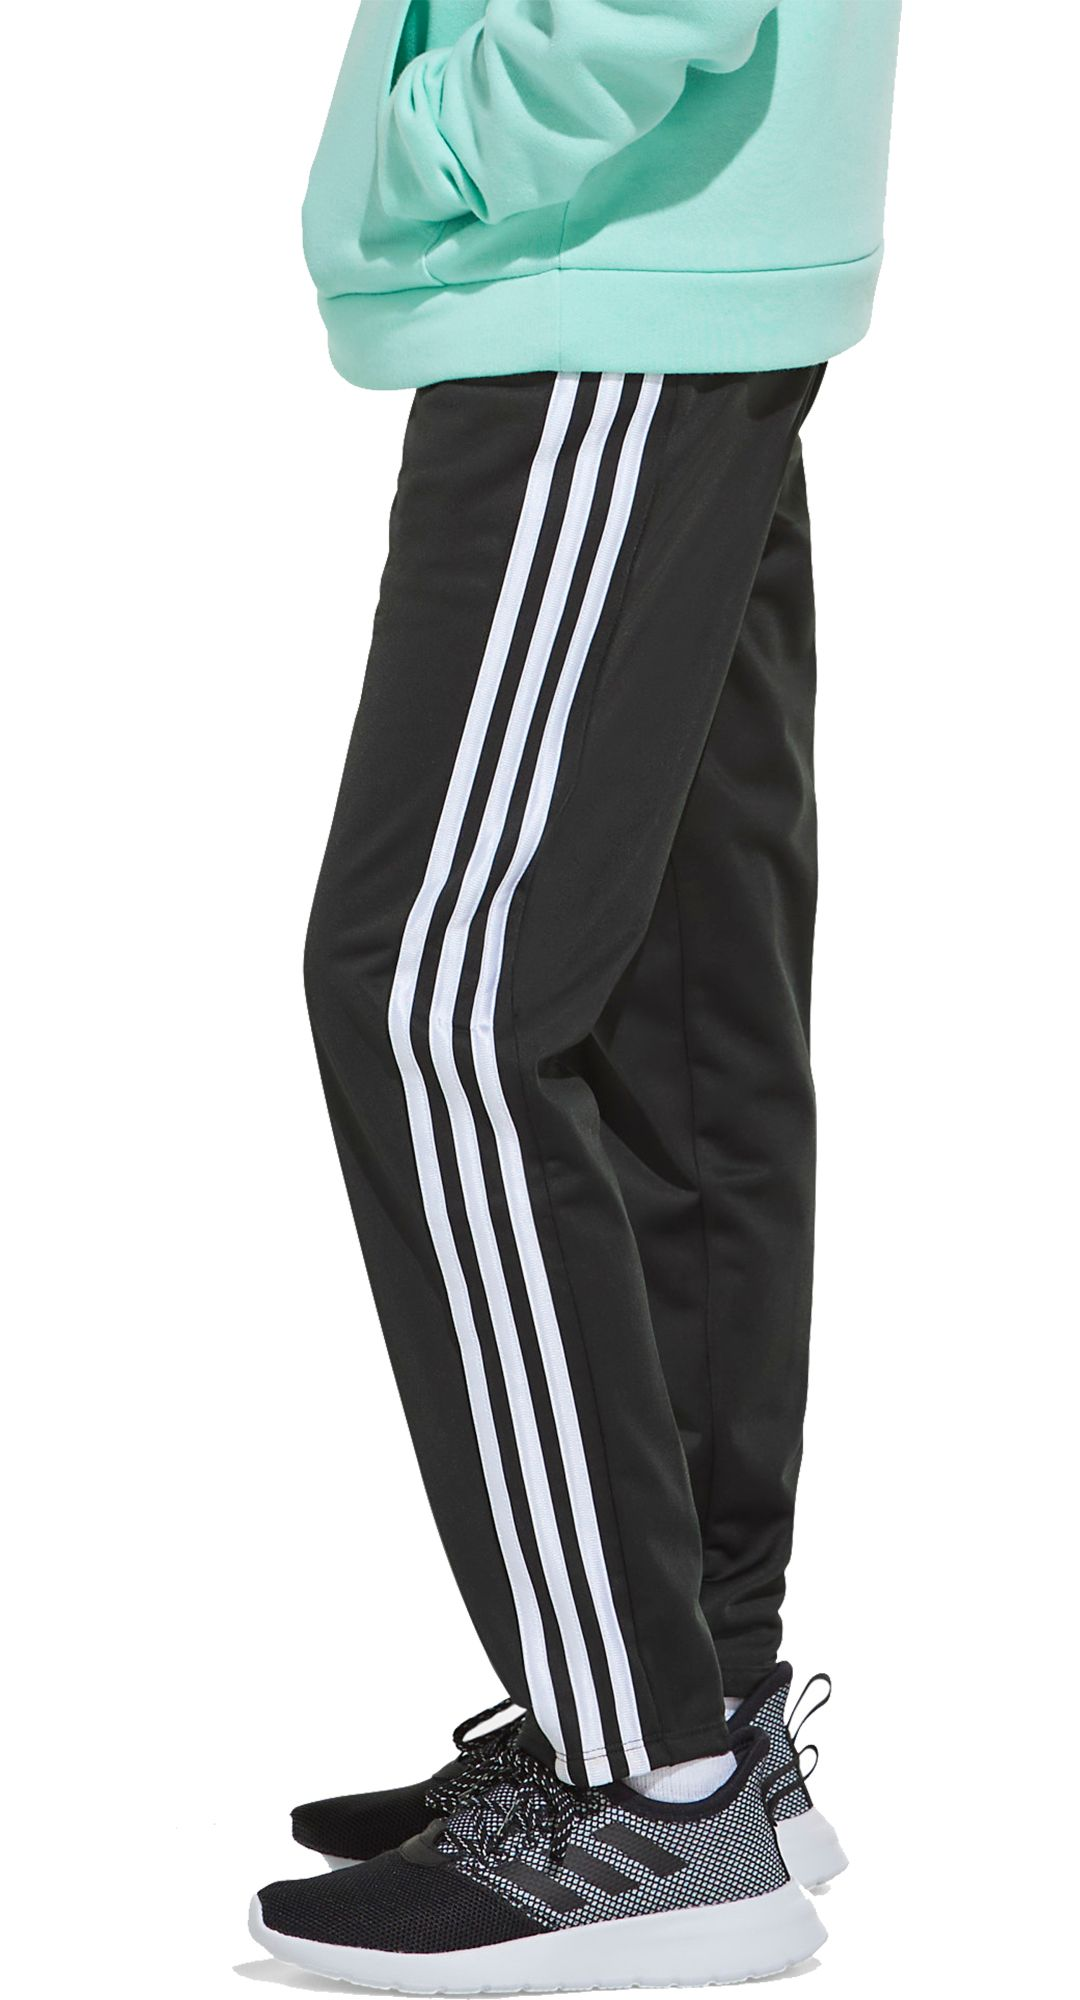 adidas Girls' Tricot Track Pants DICK'S Sportswear  DICK'S Sporting Goods